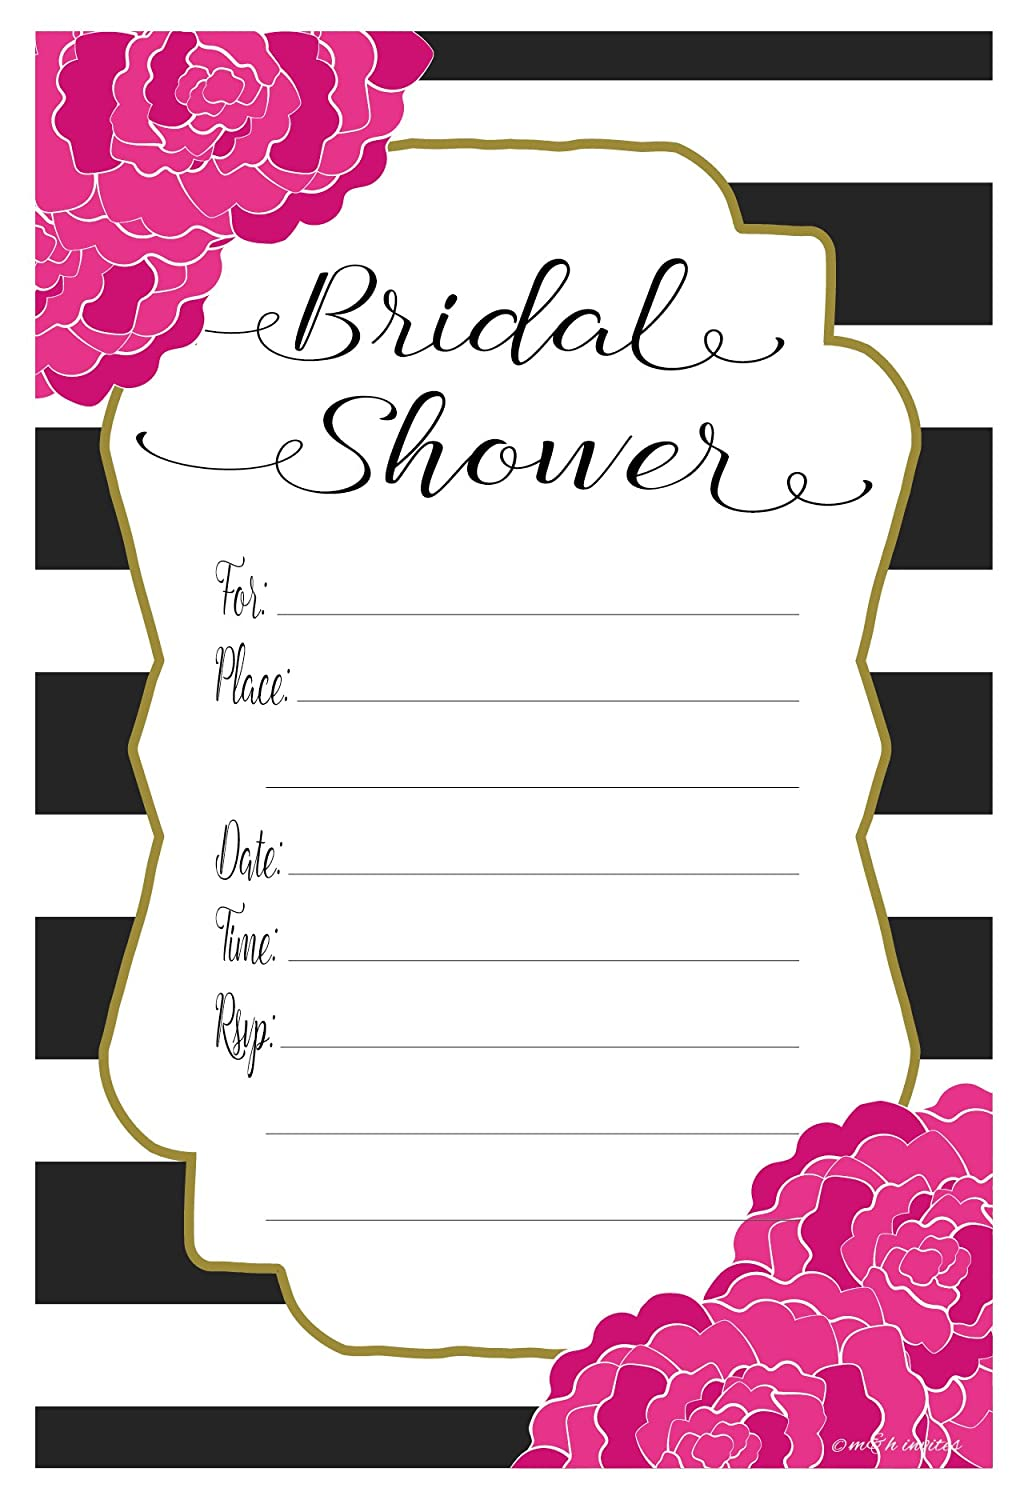 Amazon.com: Pink Floral Bridal Shower Invitations - Fill In Style ...